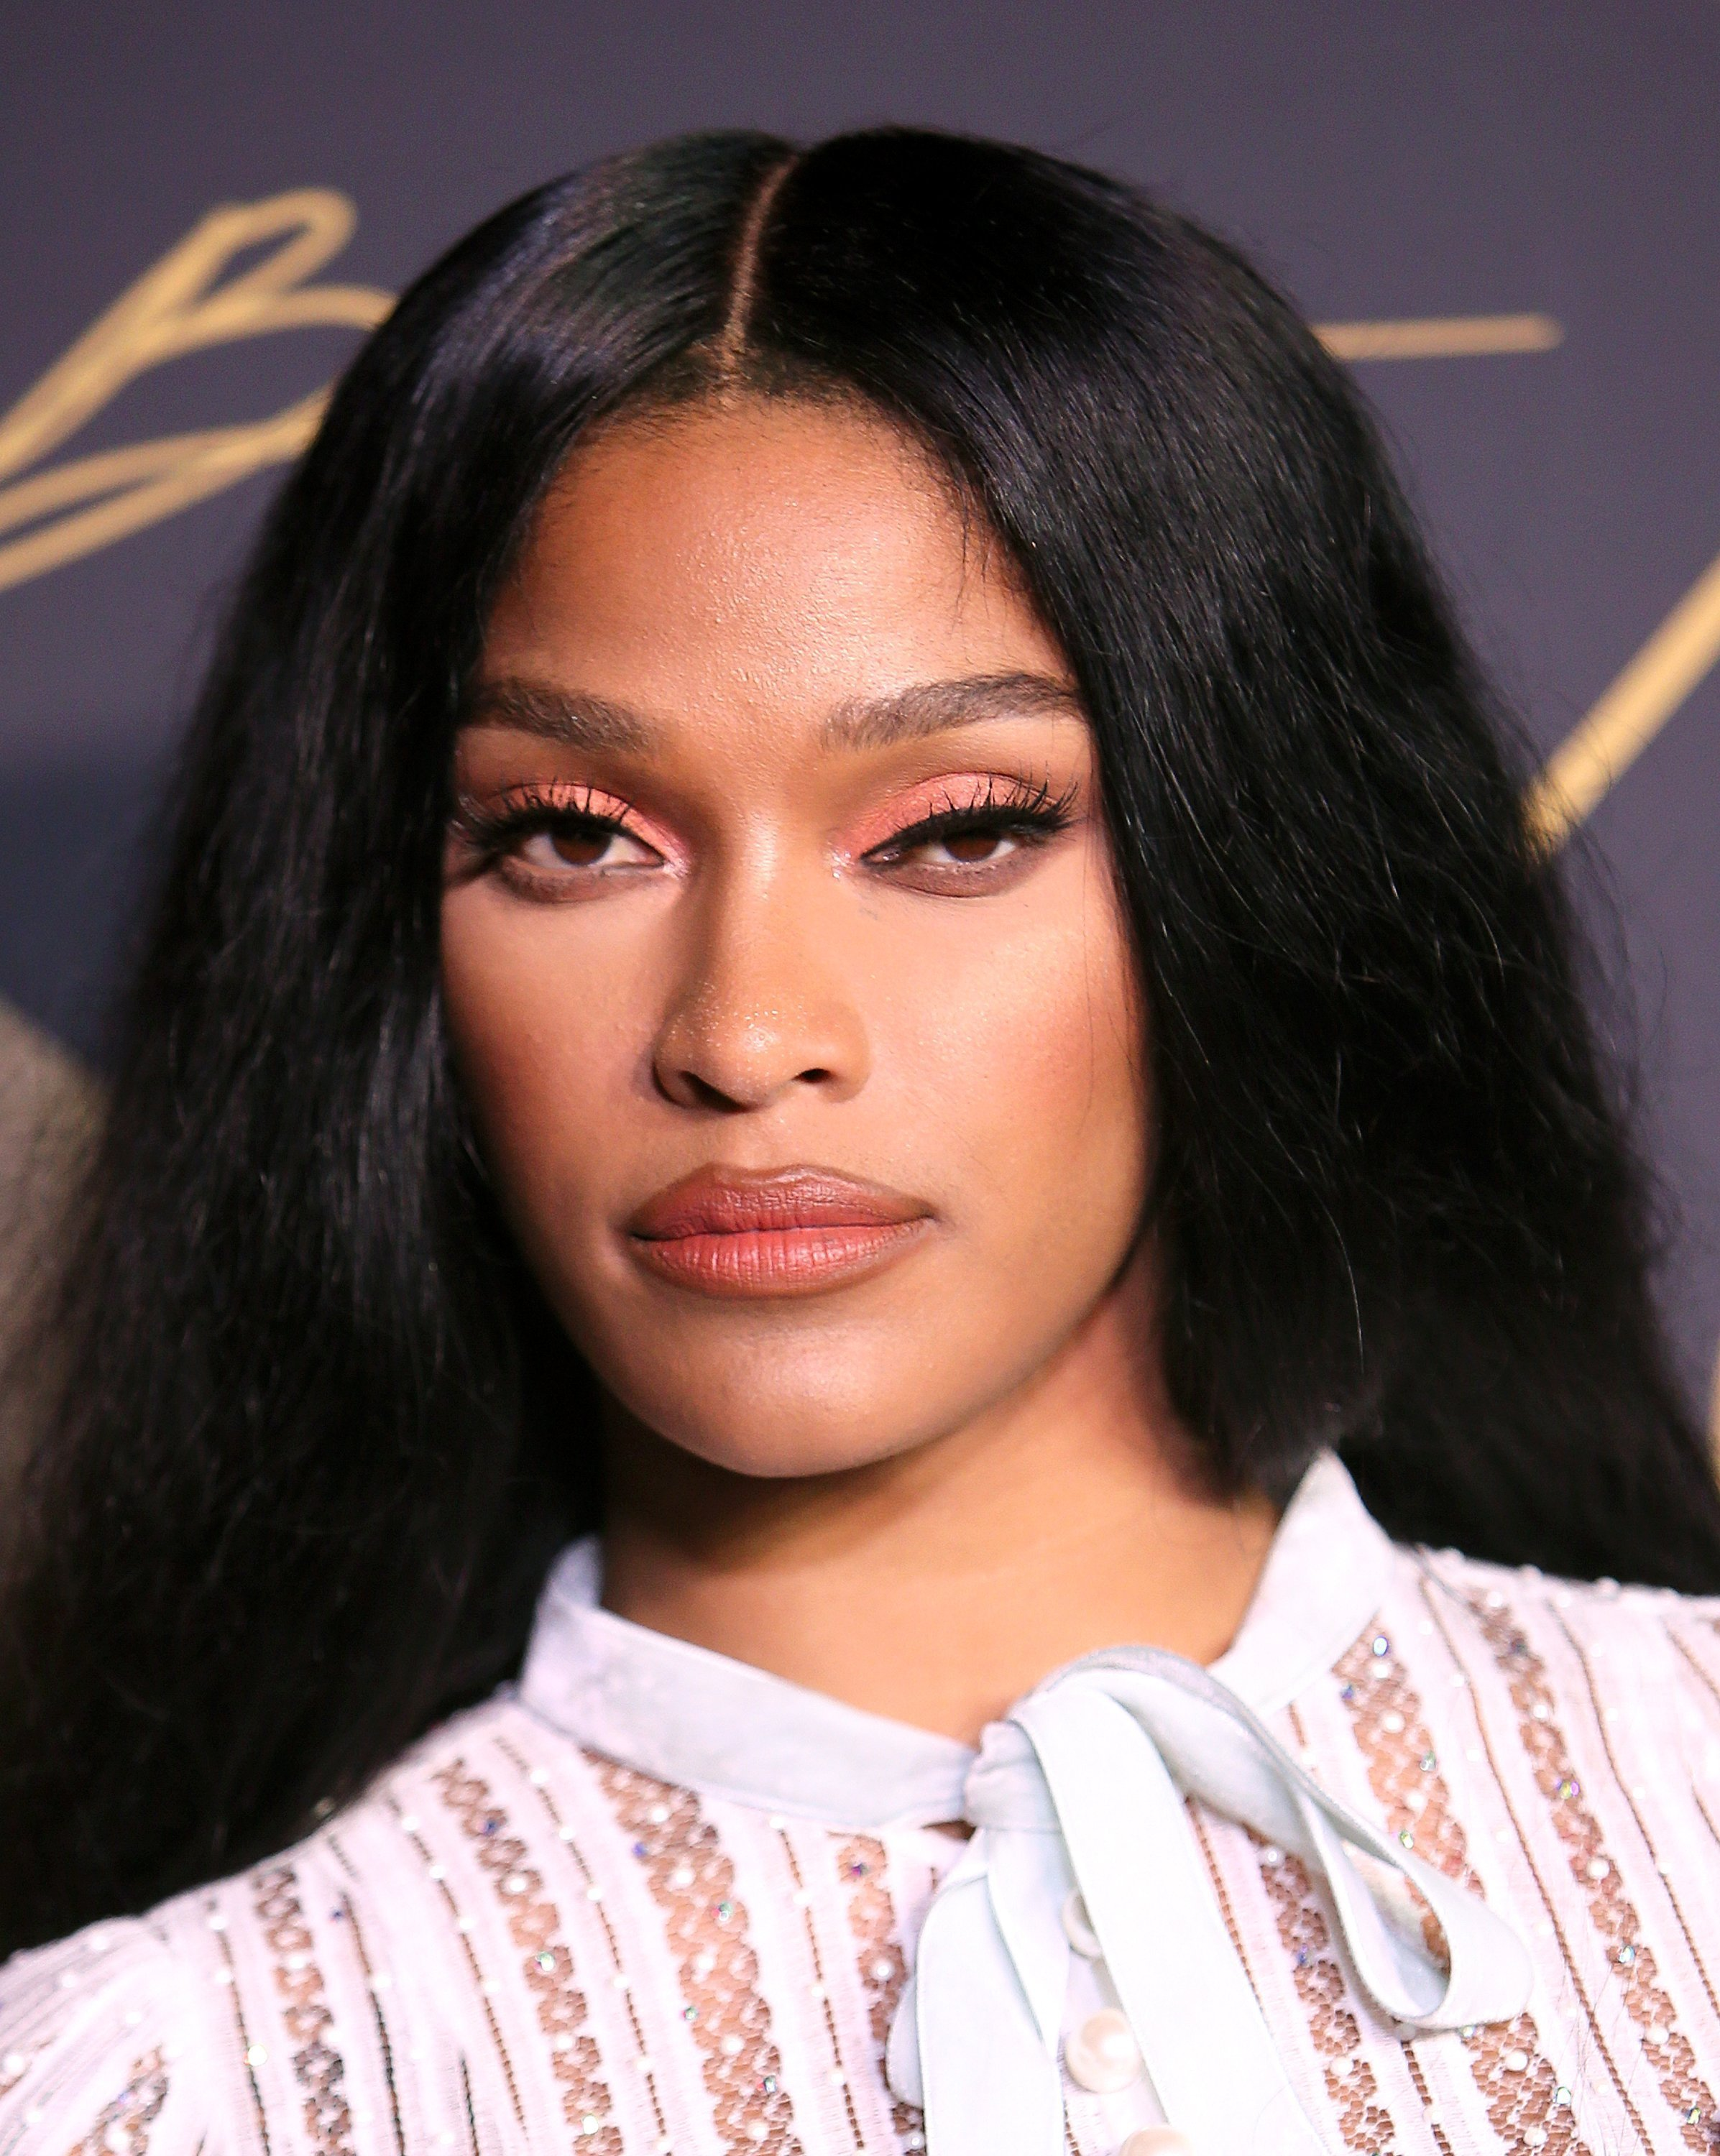 Joseline Hernandez at The MAXIM Hot 100 Party on June 24, 2017 in California | Photo: Getty Images